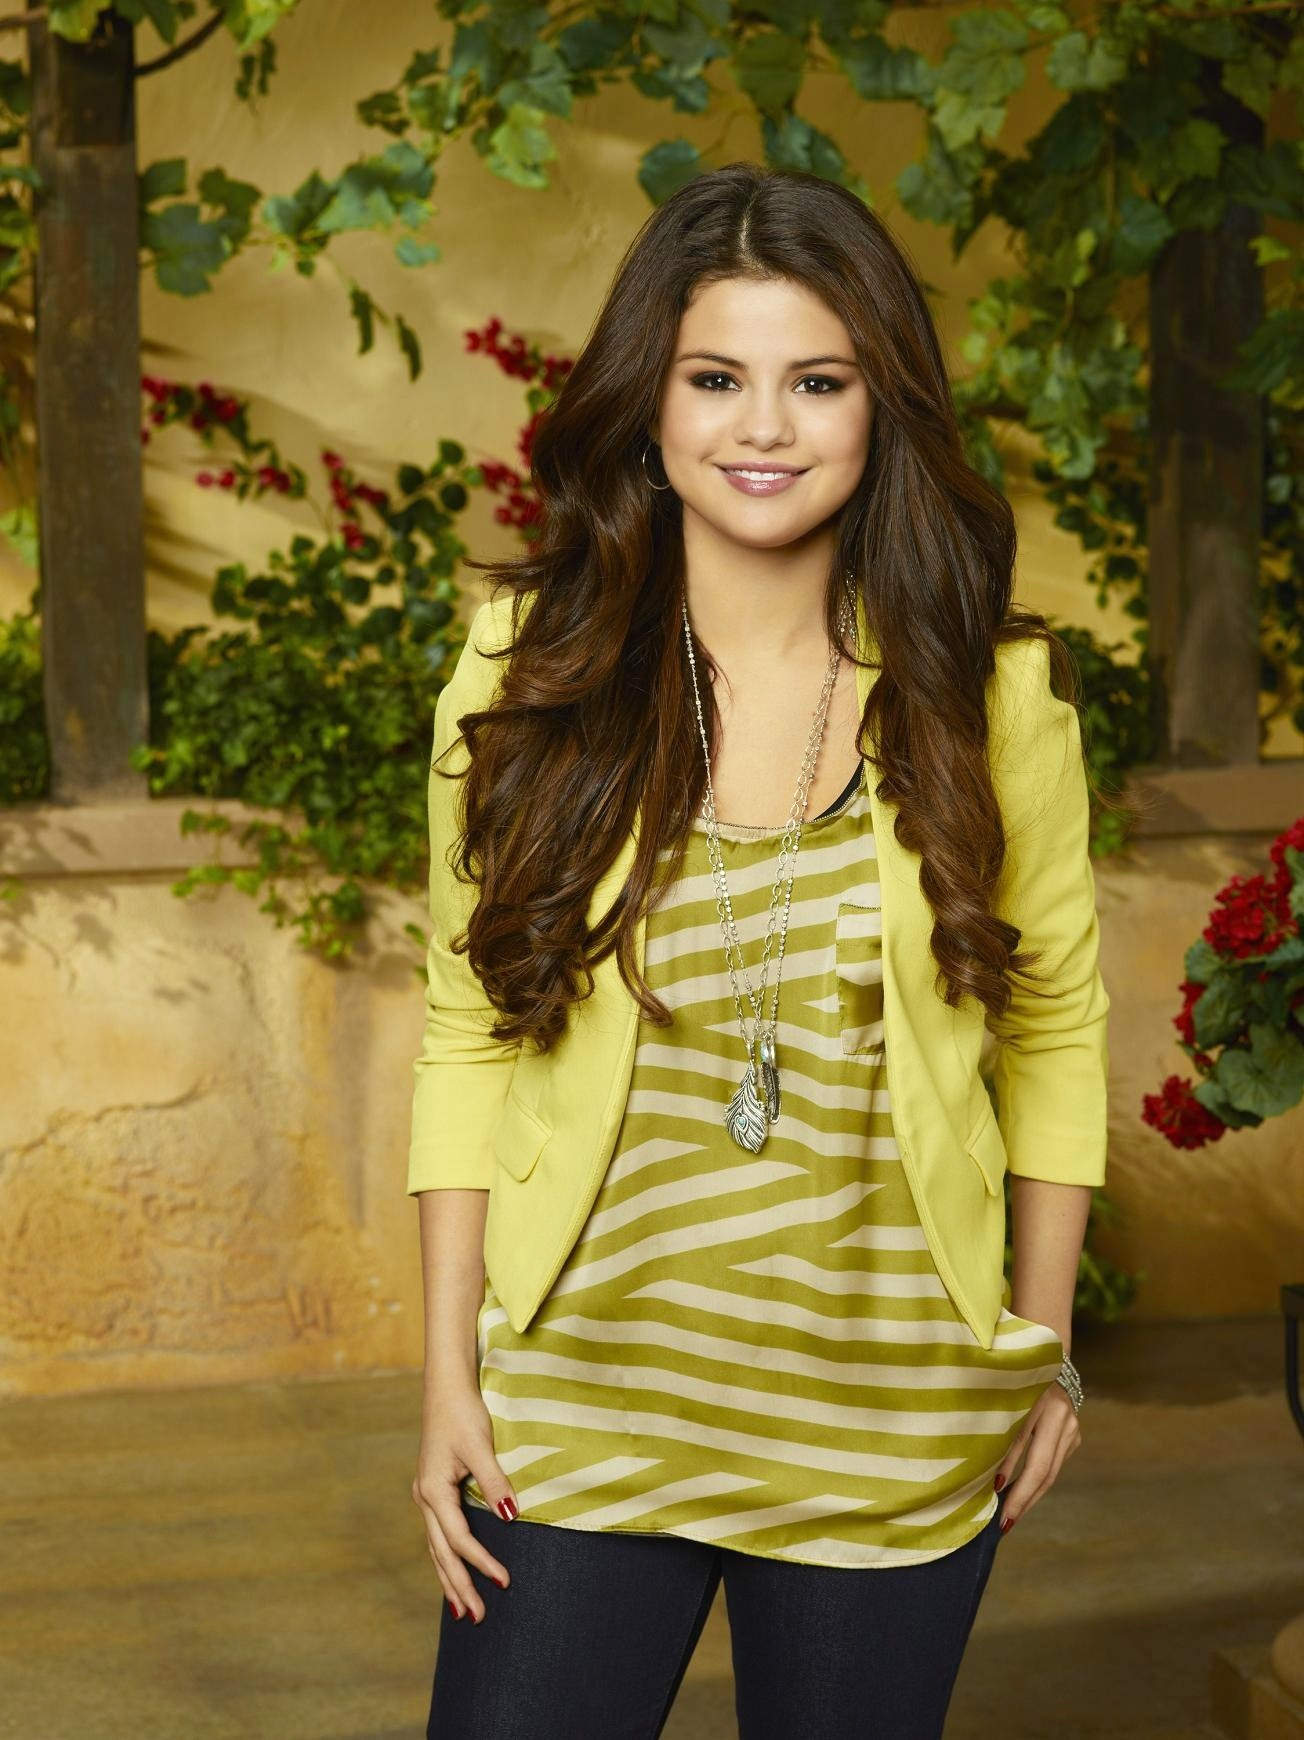 Wizards of waverly place harper dresses 2018